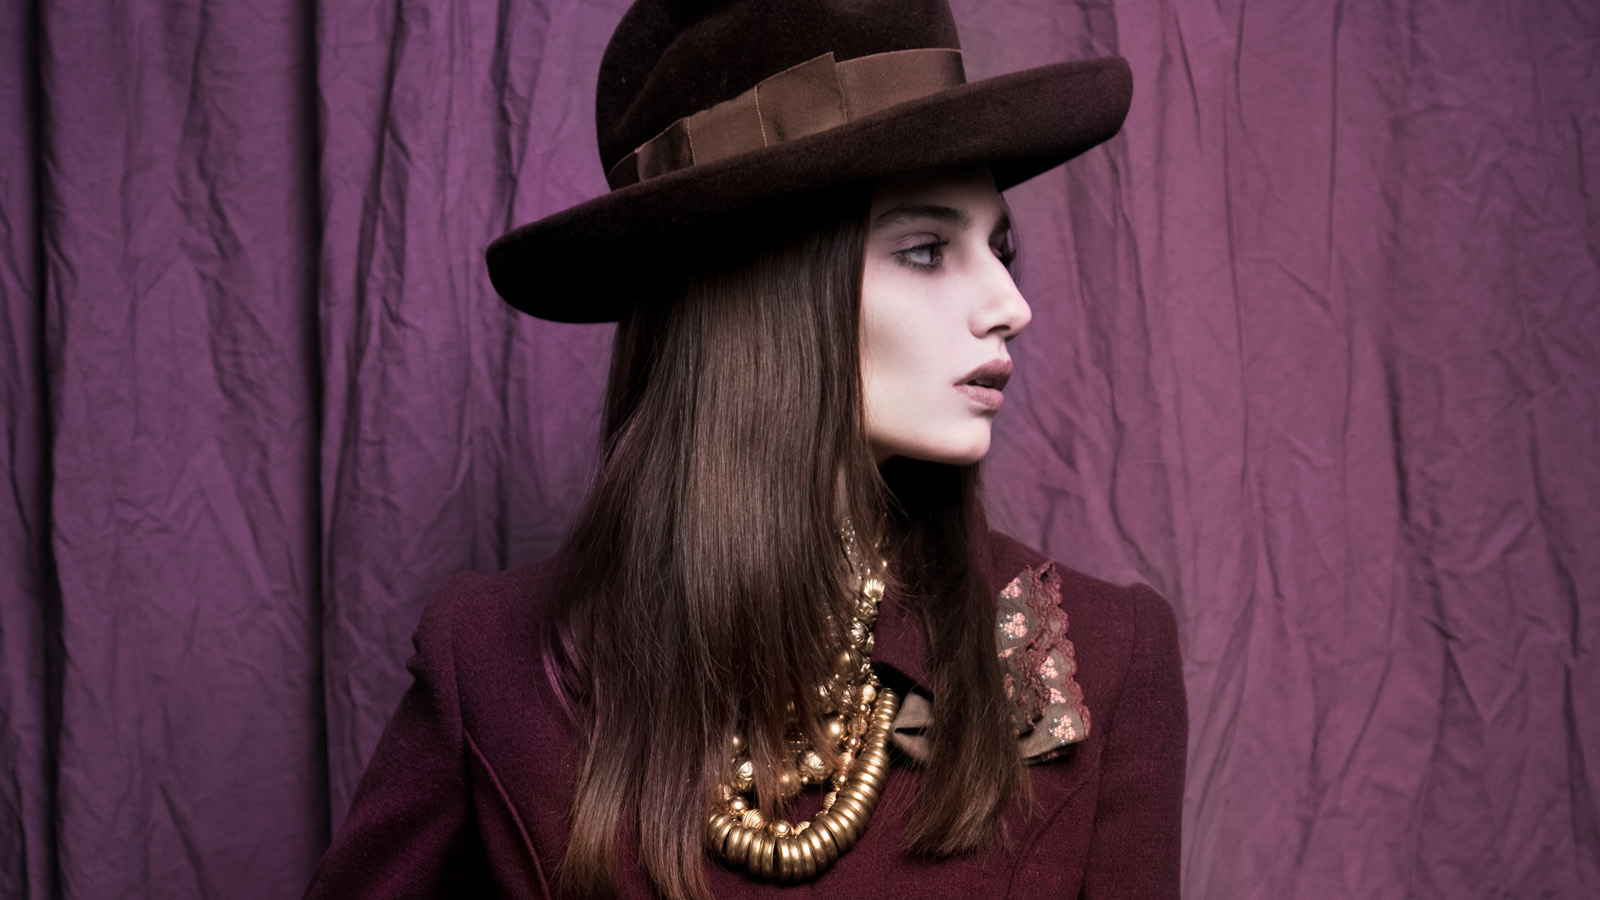 Online vintage shop, The Rabbit Hole vintage clothing Miami fashion editorial brown hat